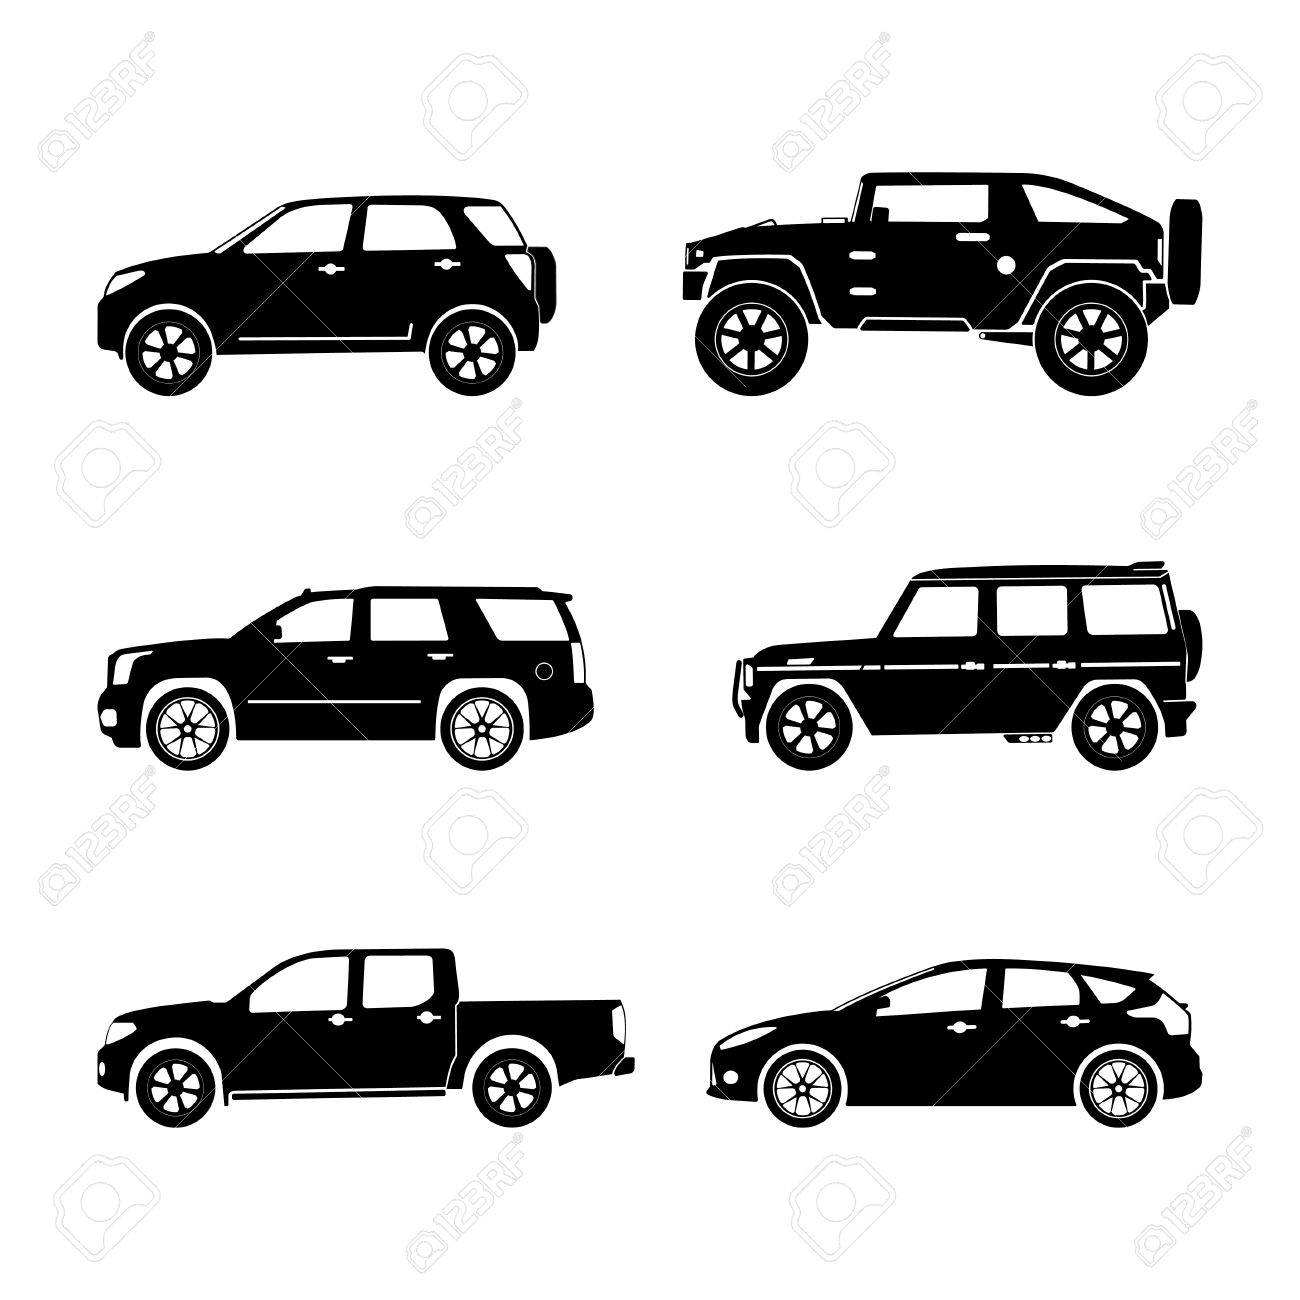 Black silhouette cars on white background. Vector SUV set.